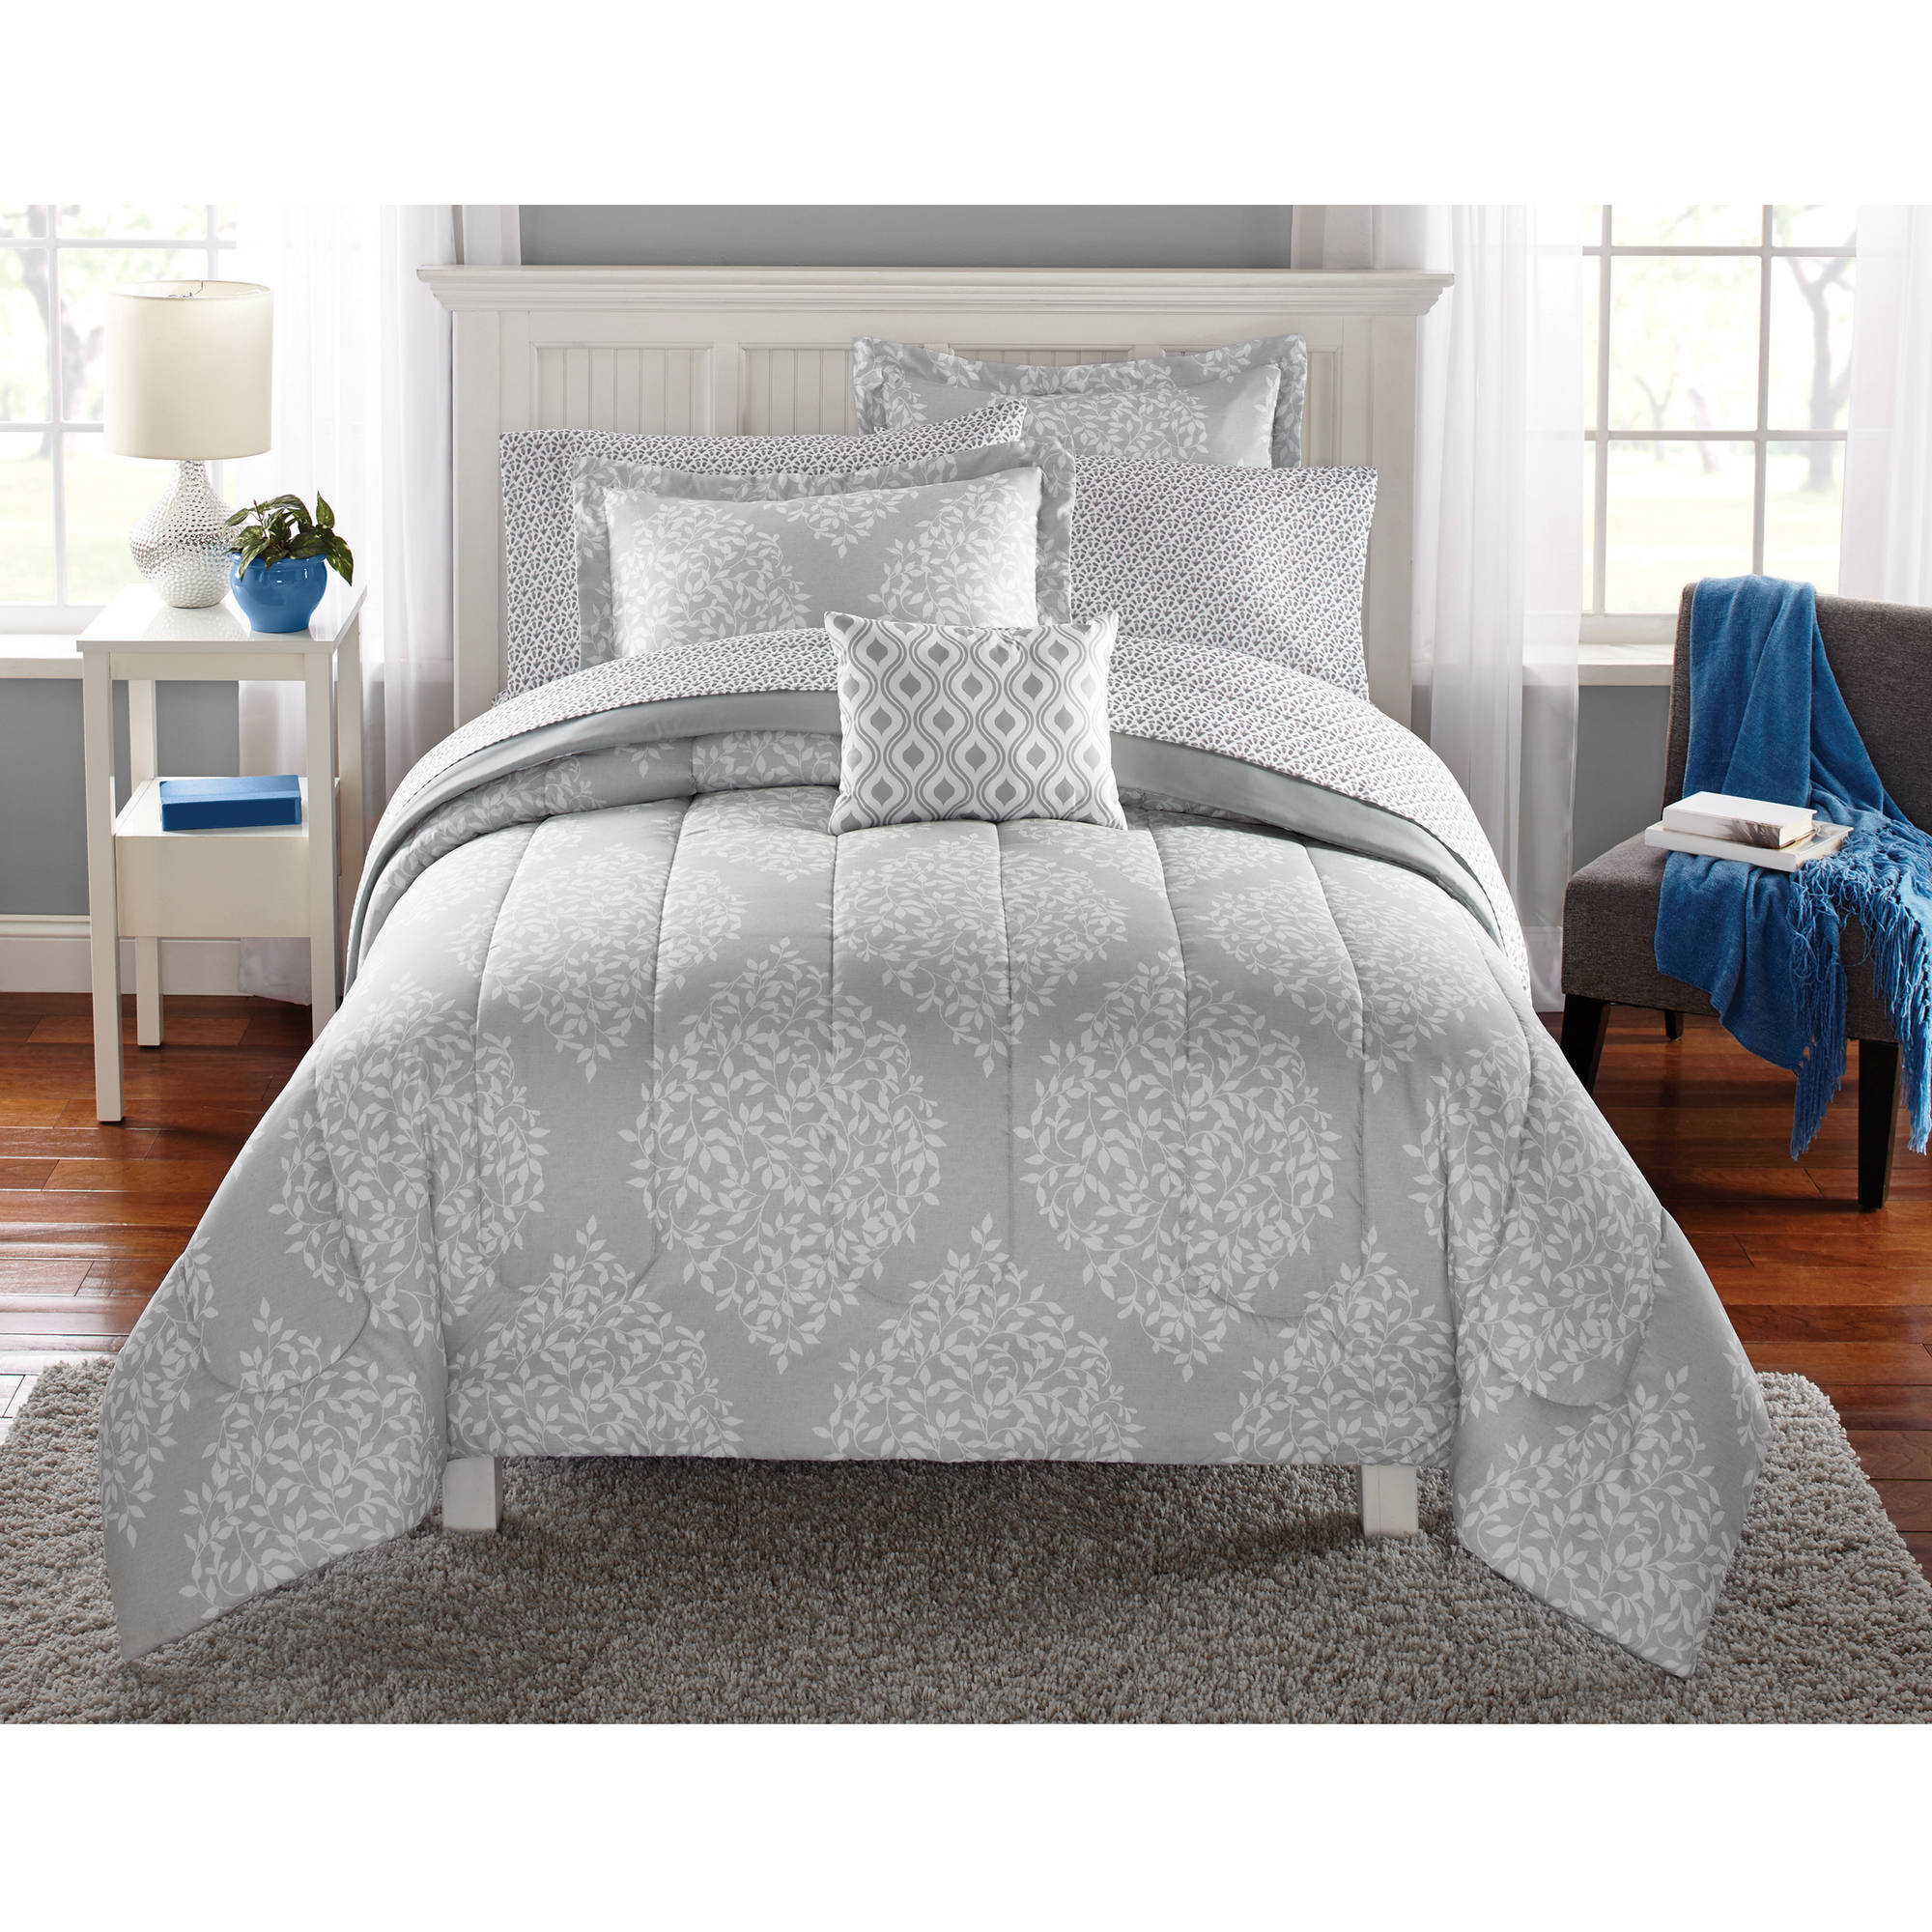 Mainstays Leaf Medal Bed in a Bag Bedding Set - Walmart.com